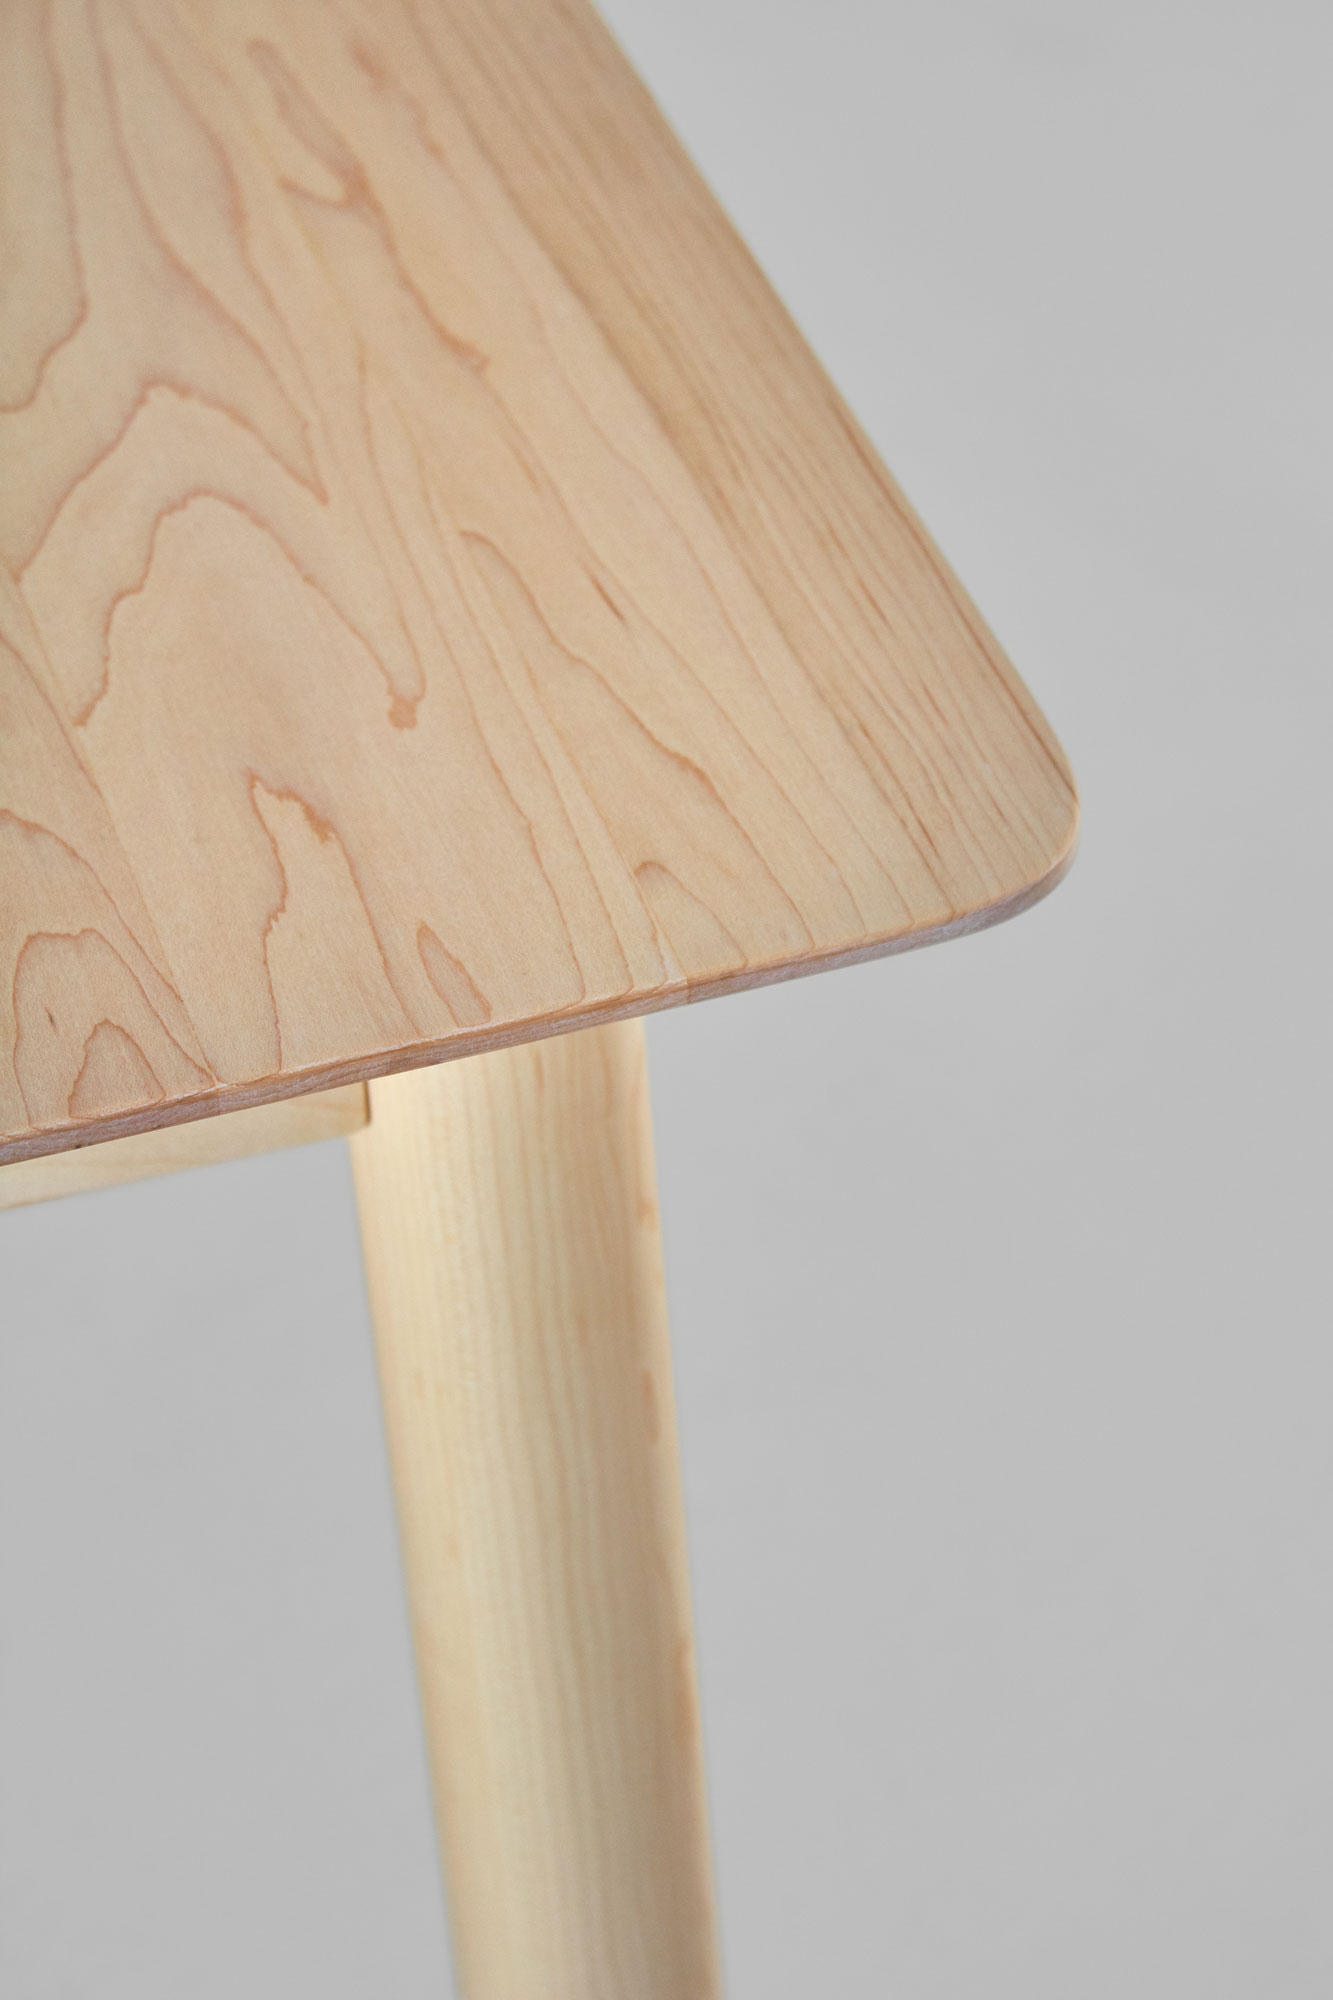 Style Wood Table LOCA 0309 custom made in solid wood by vitamin design